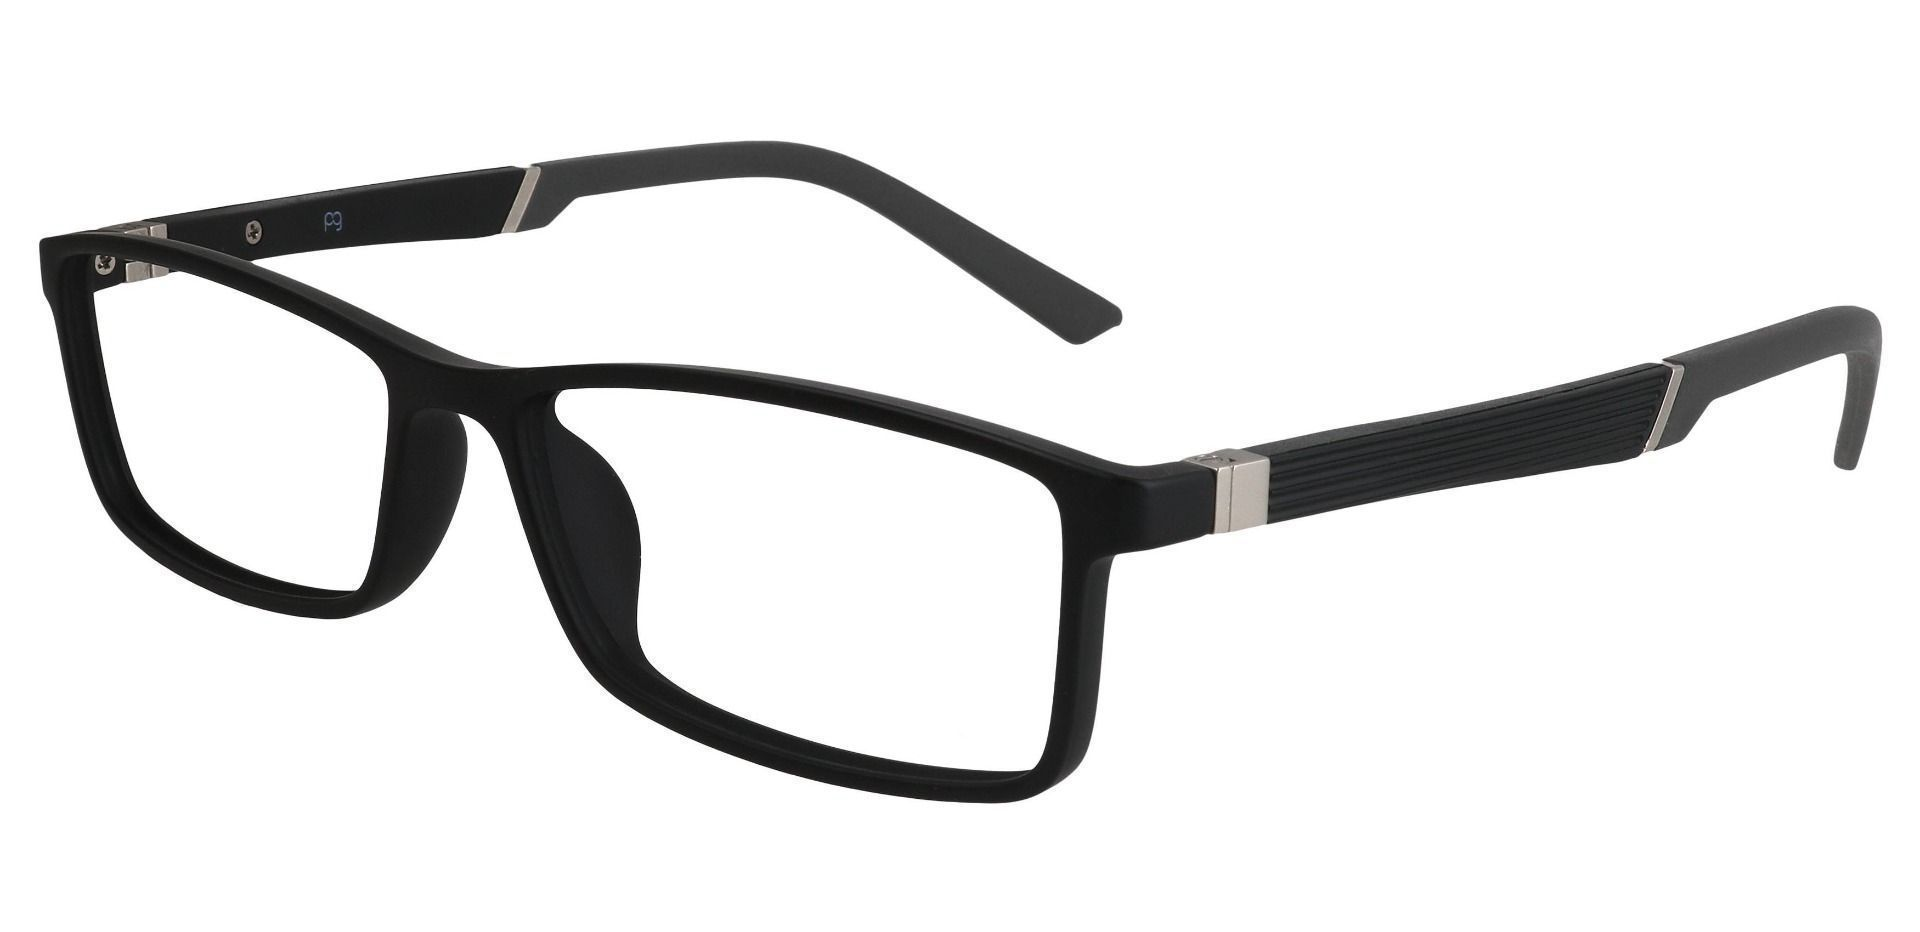 Essex Rectangle Single Vision Glasses - Black